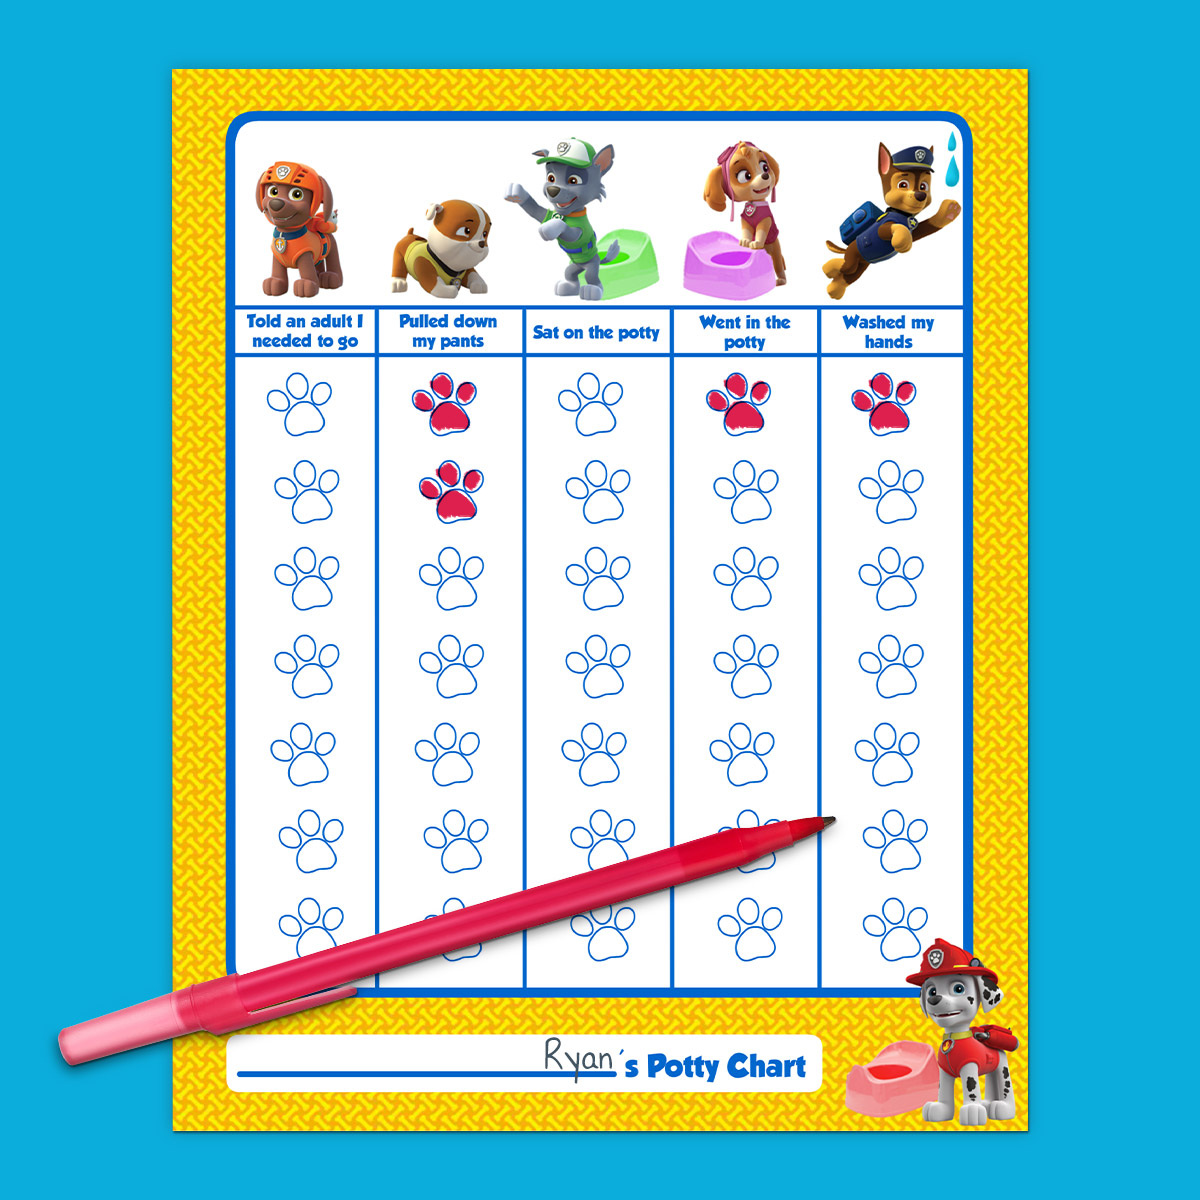 image about Printable Potty Charts for Toddlers known as PAW Patrol Potty Doing exercises Chart Nickelodeon Mothers and fathers